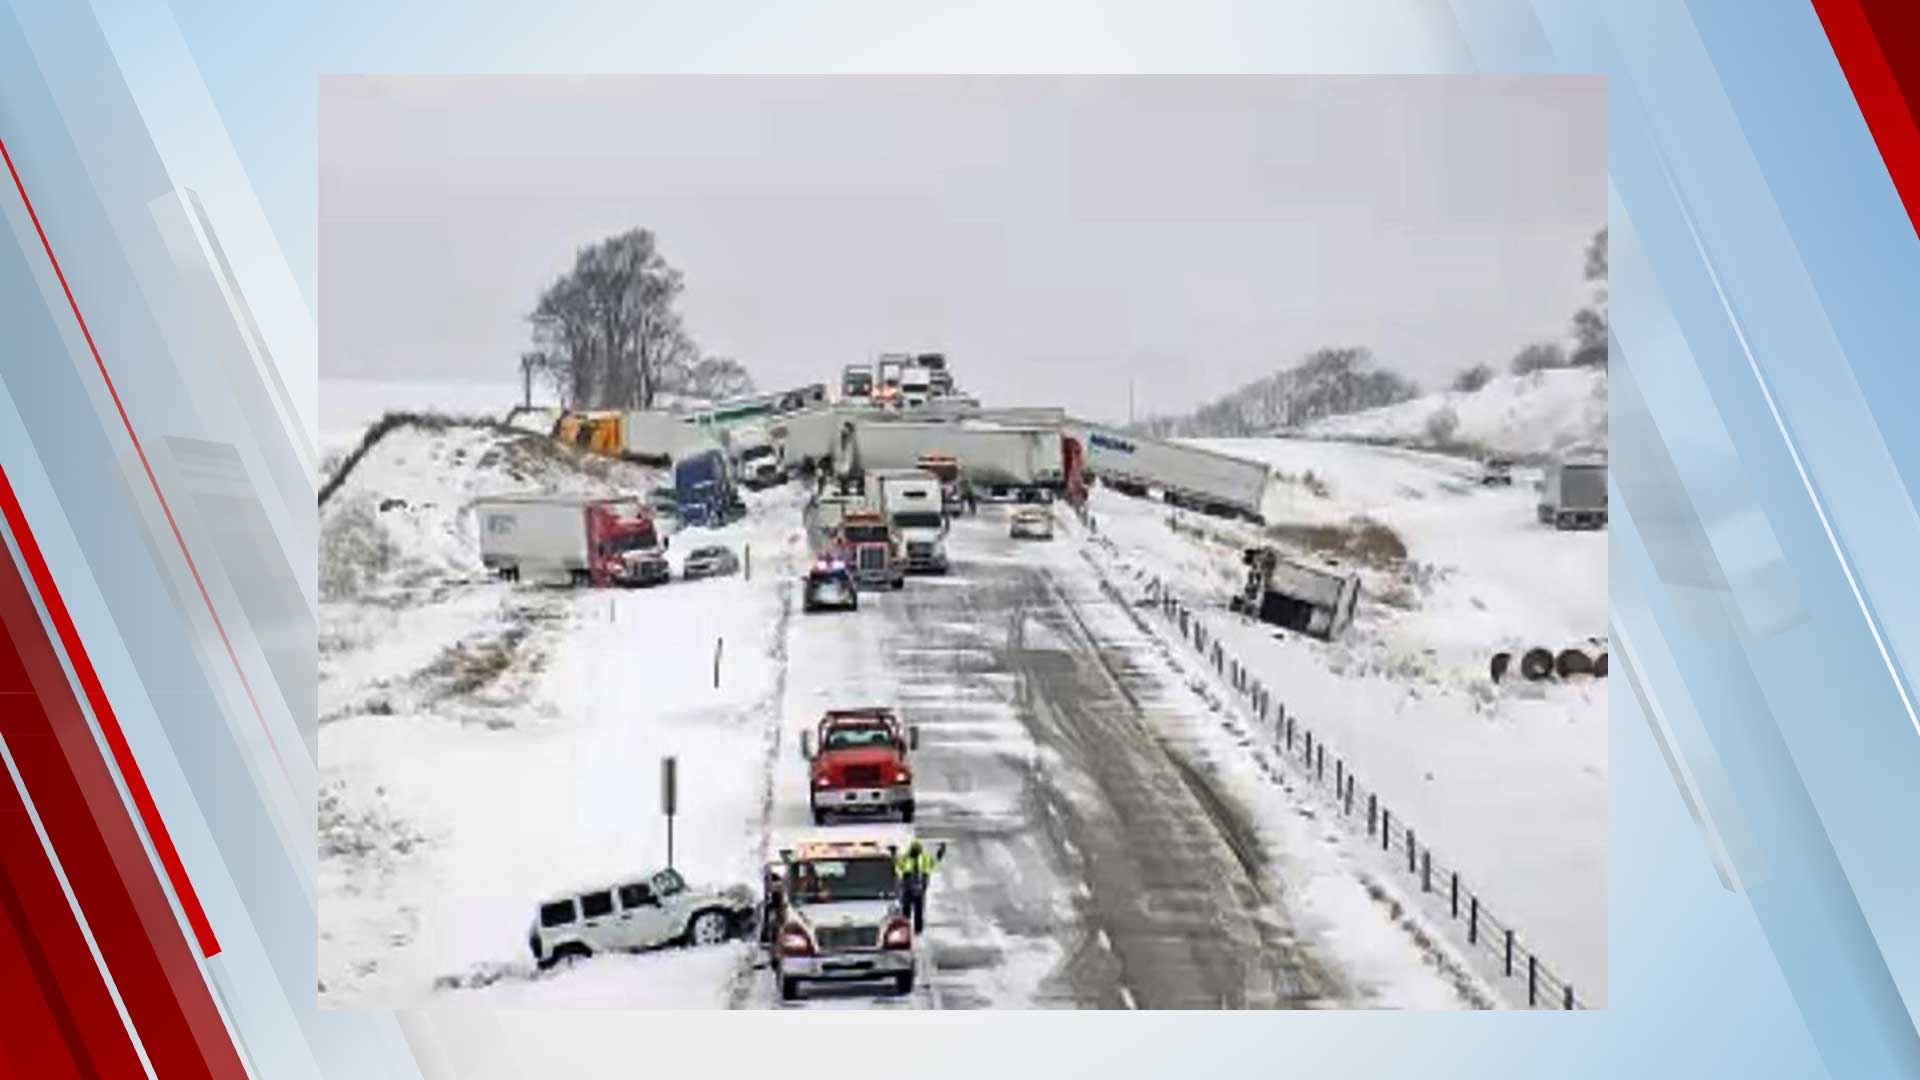 Serious Injuries Reported After Massive 40-Vehicle Pileup On Snowy Section Of I-80 In Iowa